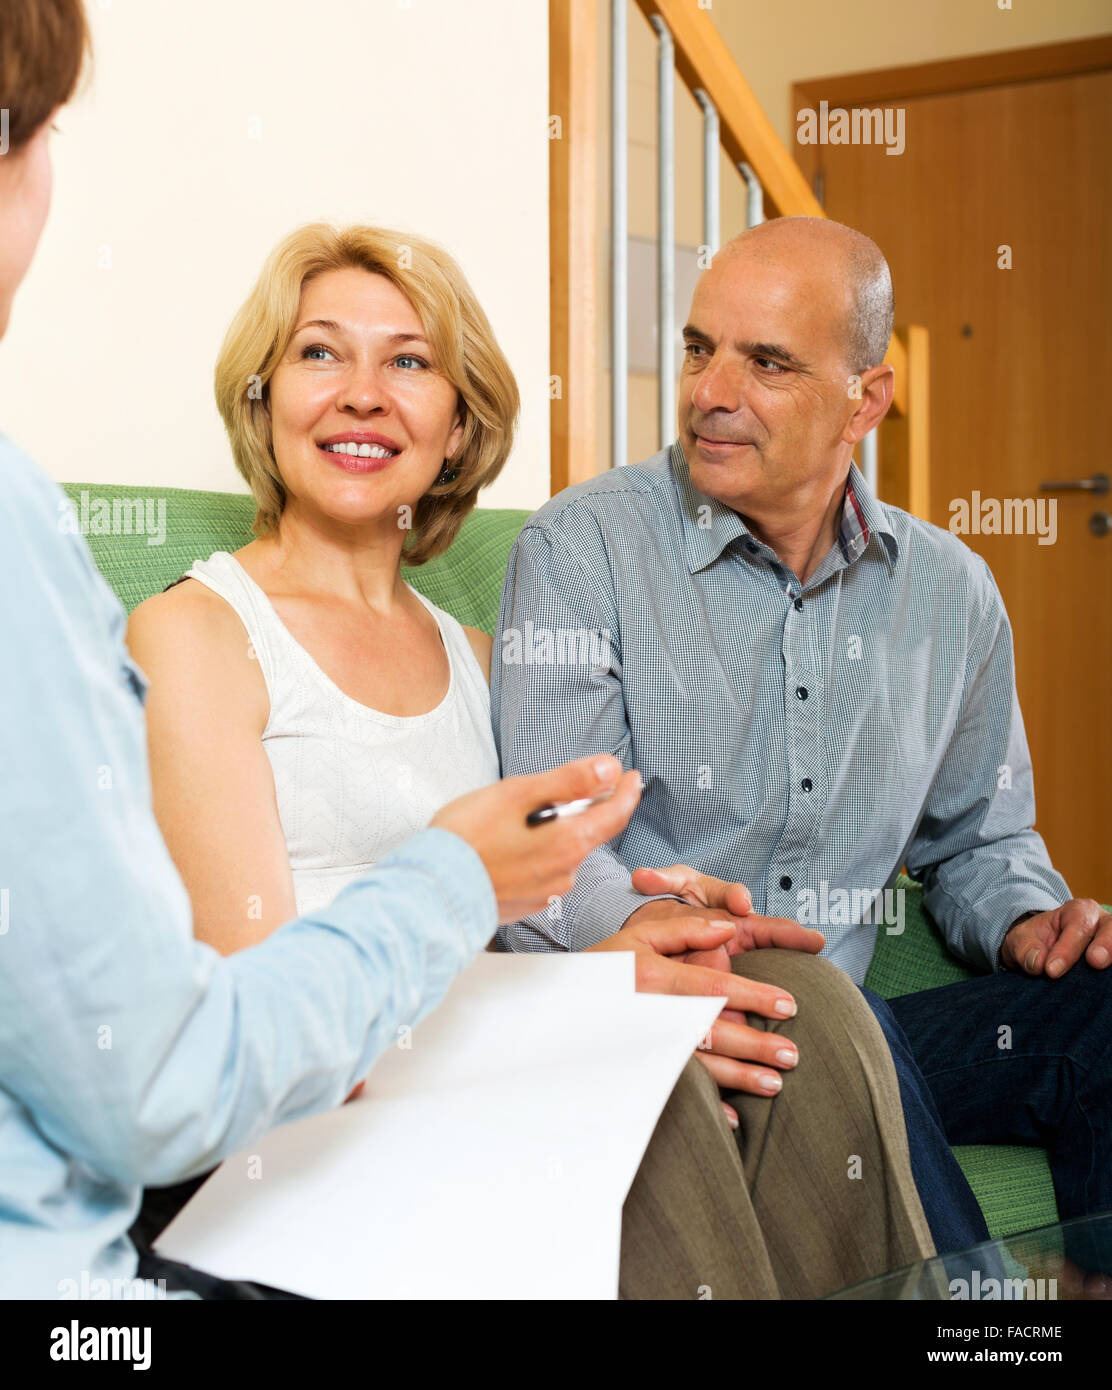 Happy mature couple discussing details of private